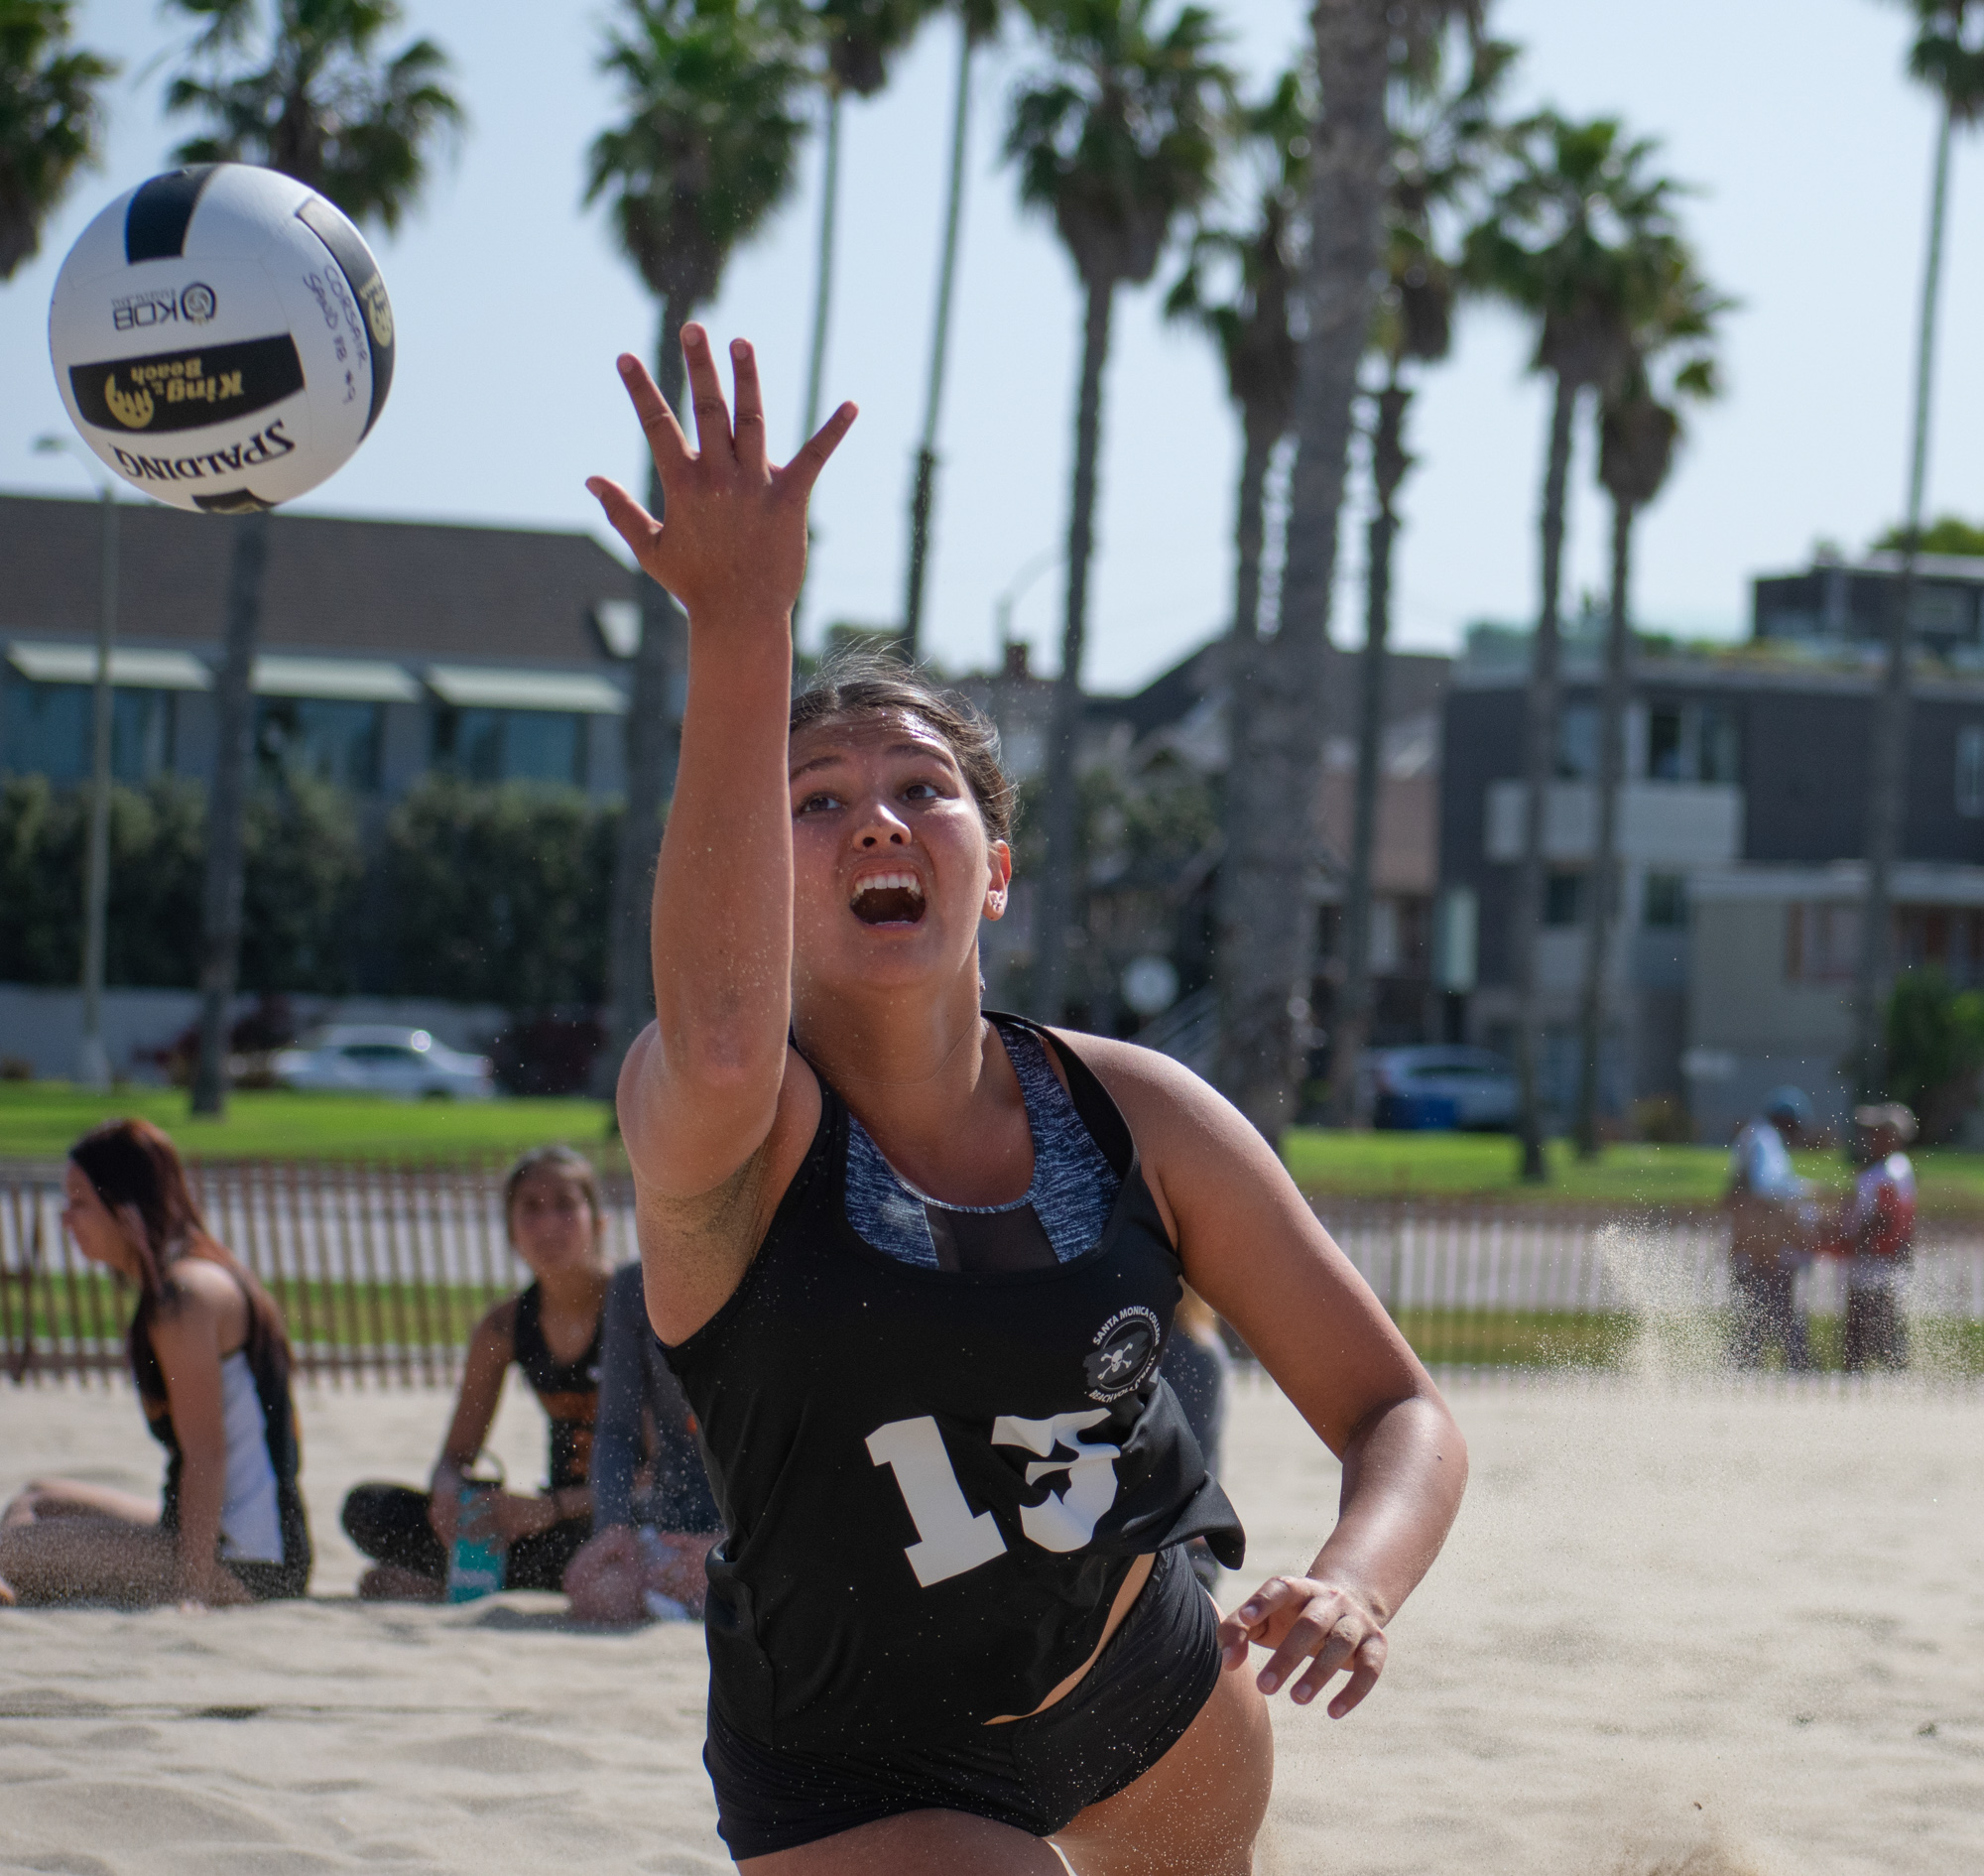 Santa Monica College Corsair Ada Nadzakova (#13) misses the ball against the Ventura College Pirates, Kasie Spencer (#13) and Armonee Hunter (#10) during a conference game of beach volleyball at the Santa Monica beach on Friday, April 13, 2018 in Santa Monica, California. It was a 4-1 loss for the Corsairs, bringing their total to 2-11 for the season. (Ethan Lauren/Corsair Photo)